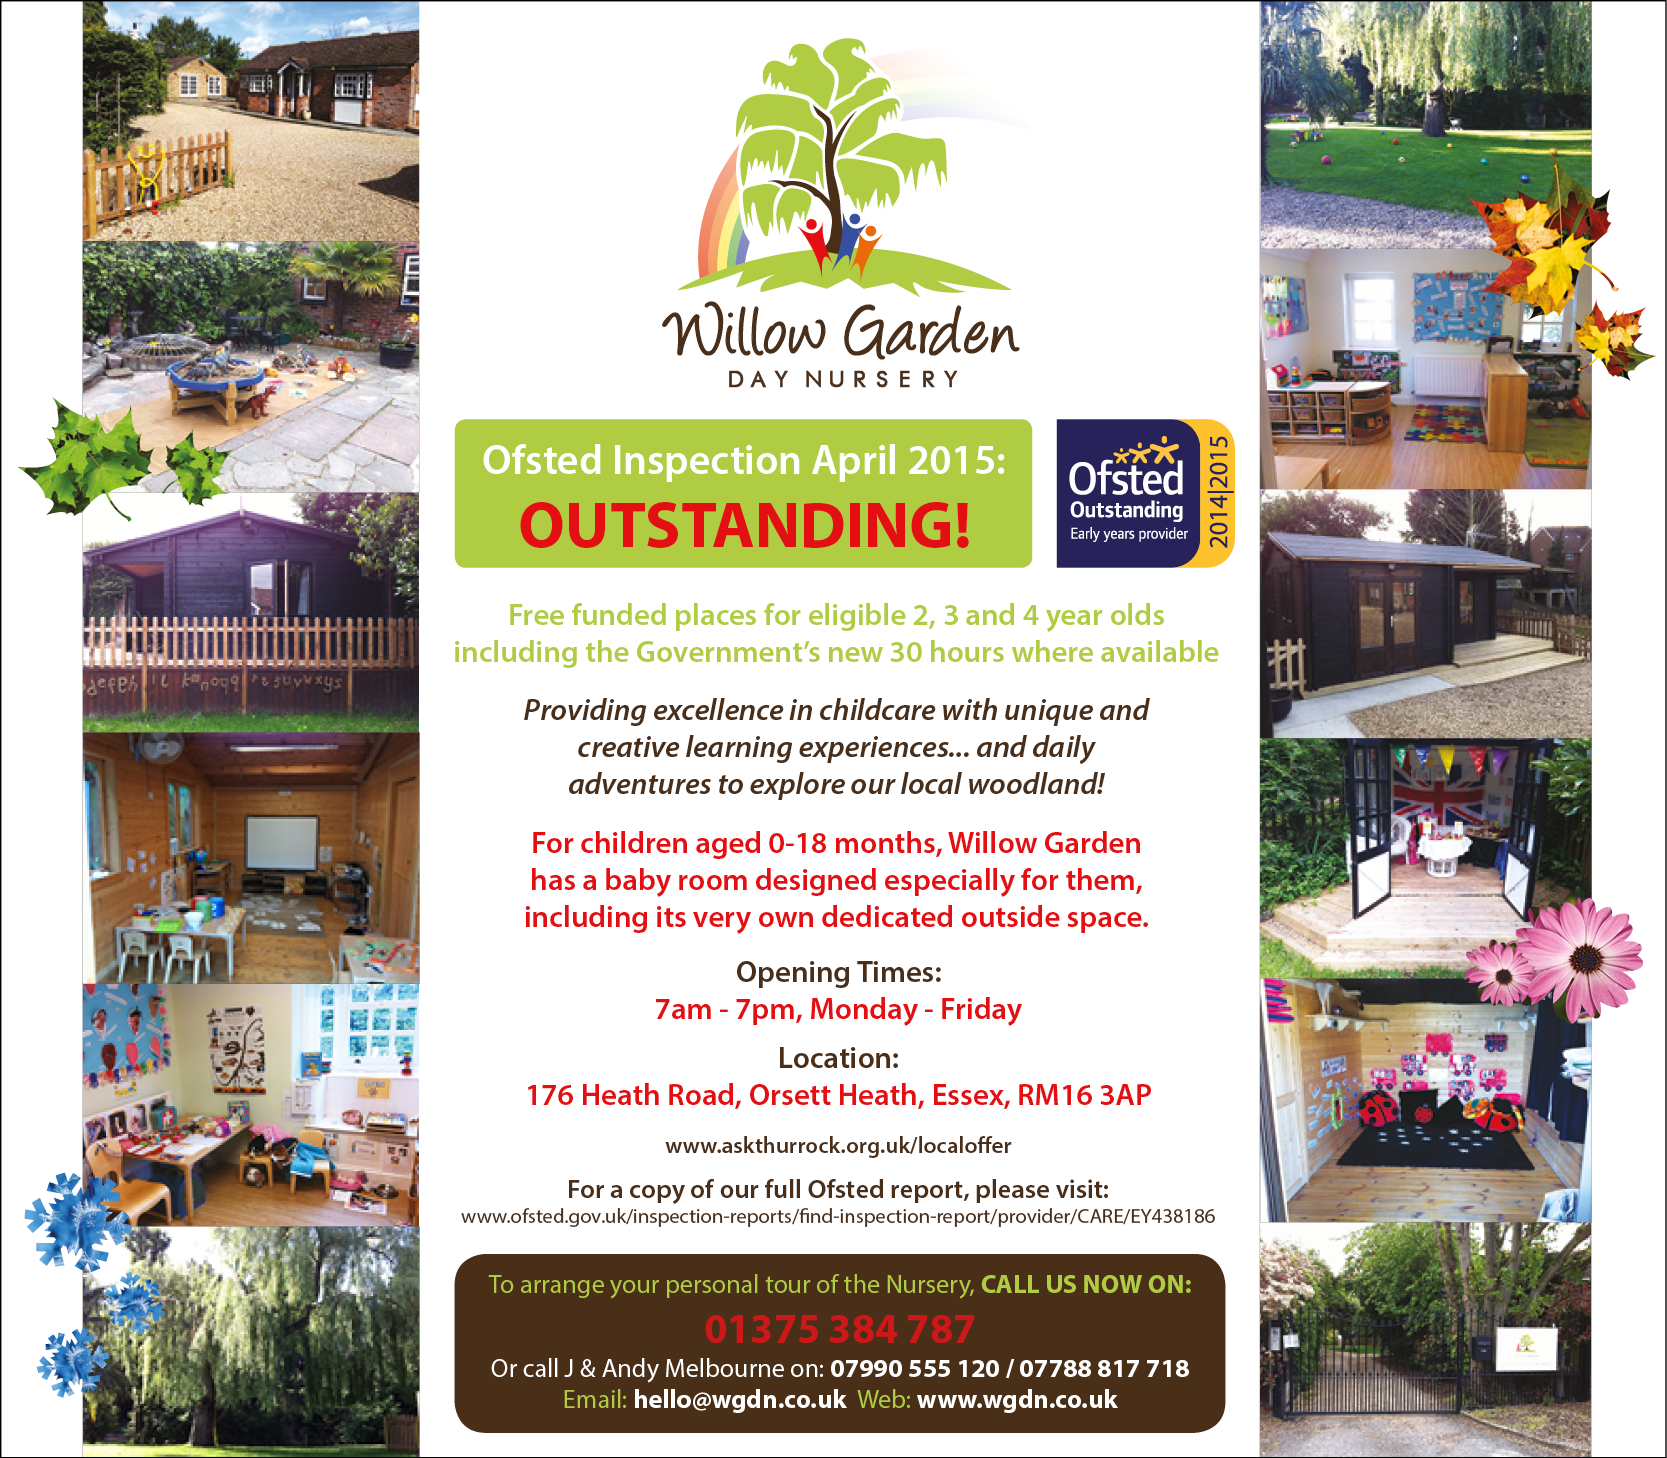 Willow Garden Day Nursery